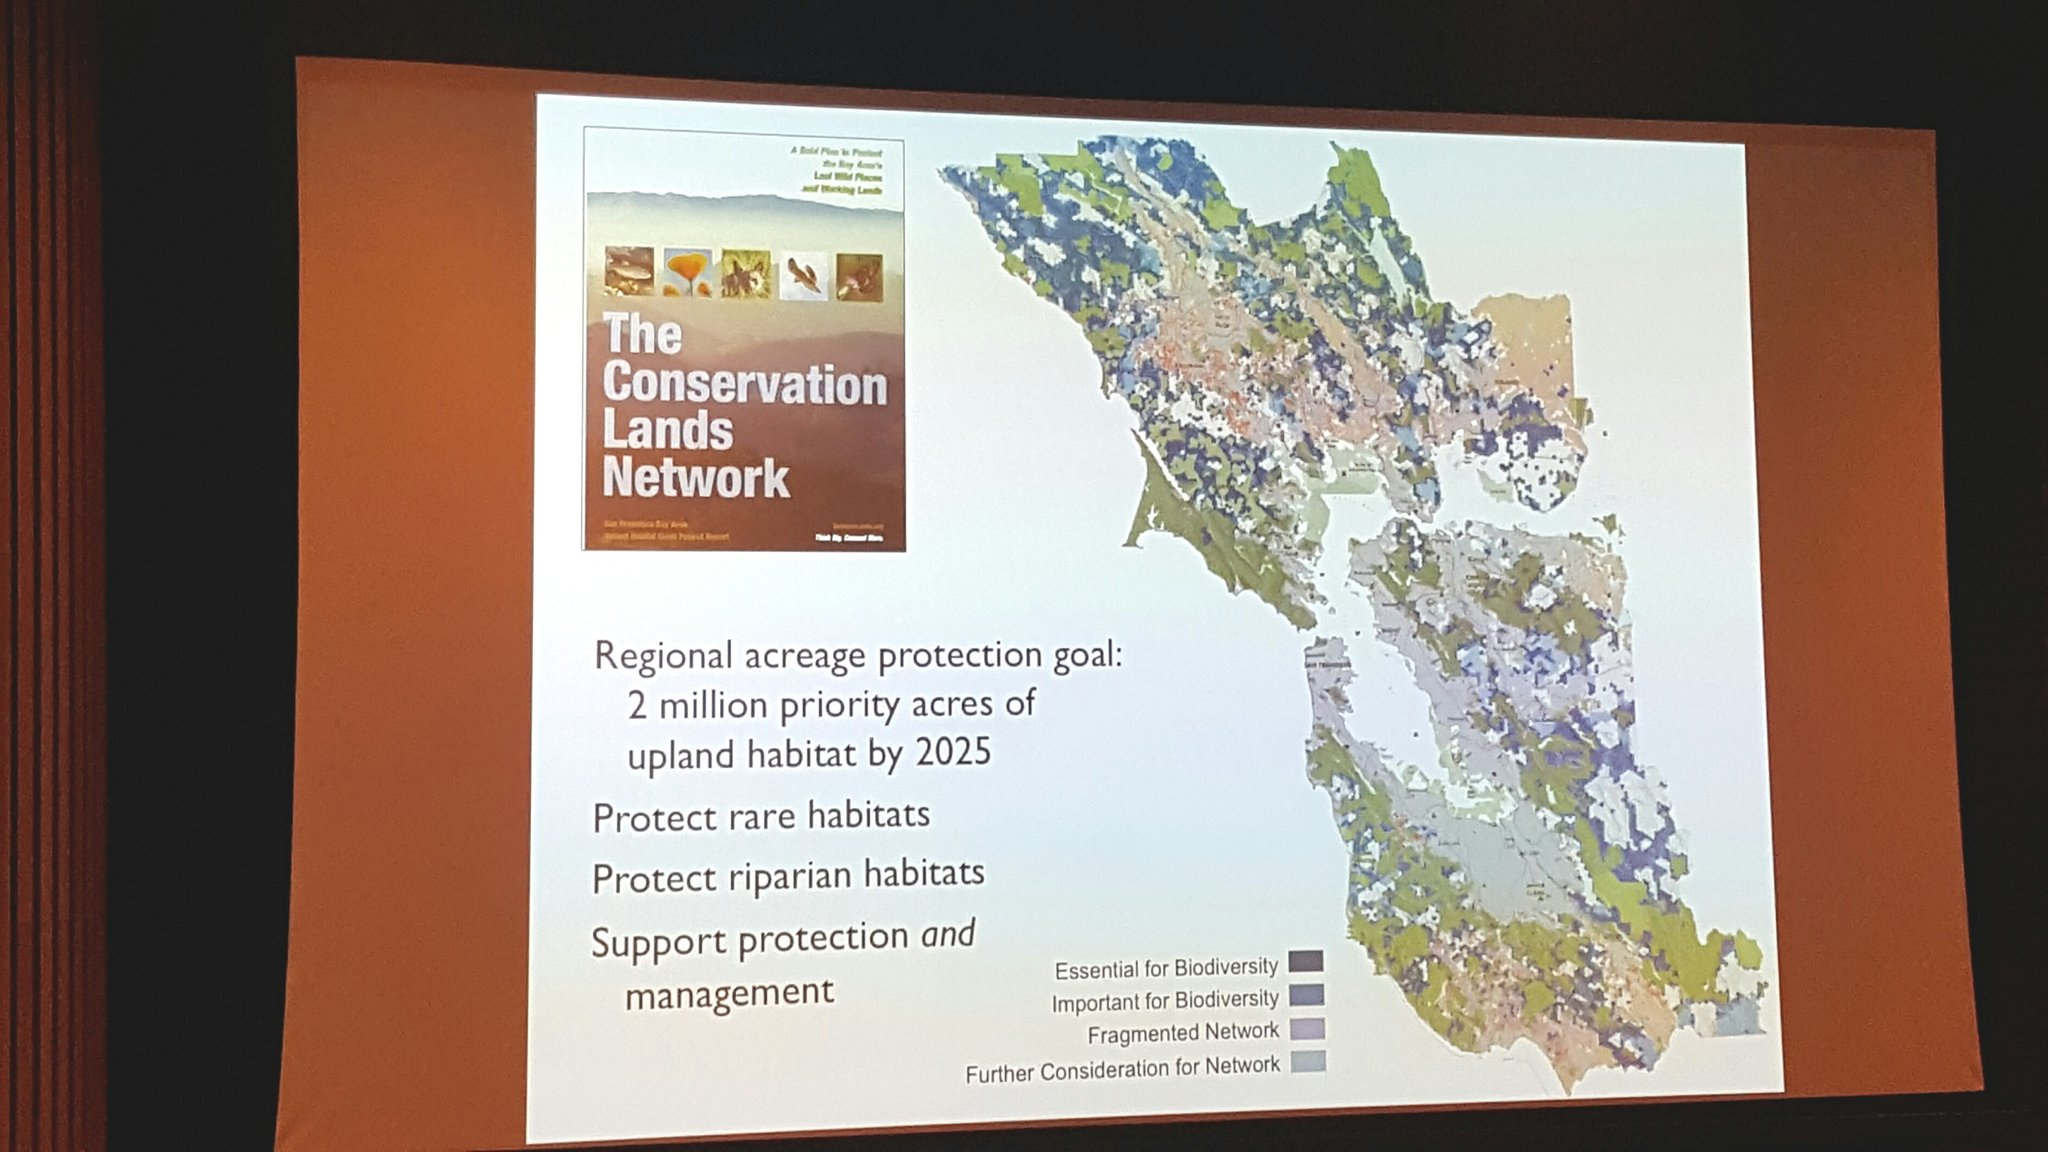 Goal of protecting 2 million priority acres in the Bay Area by 2025! Way to aim high for #conservation! #OSCWildlife https://t.co/ksvCxwFXOp